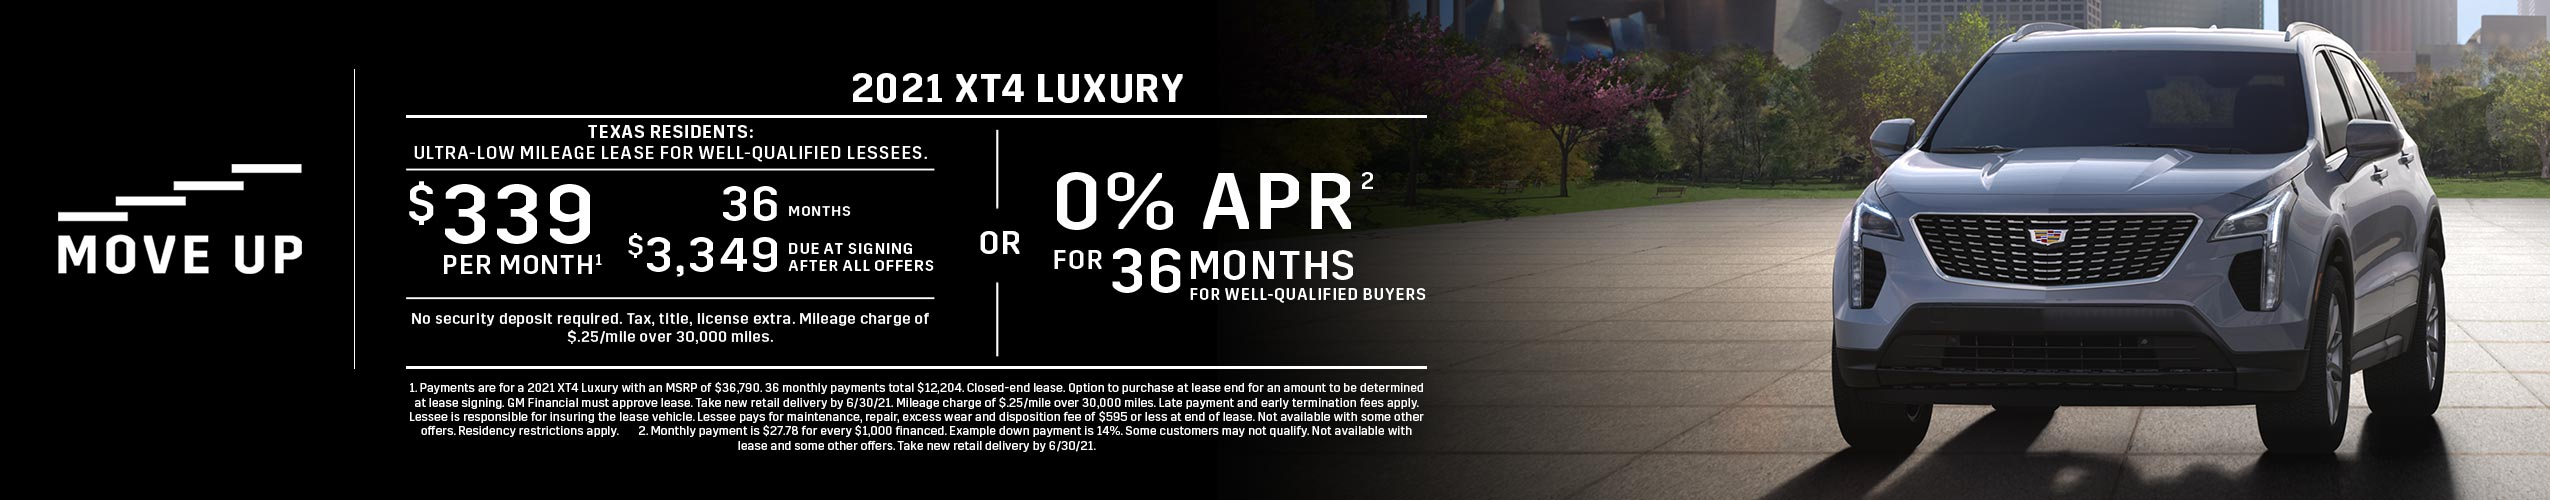 2021 XT4 Luxury: Lease or APR Offer (Image) - 6ae259